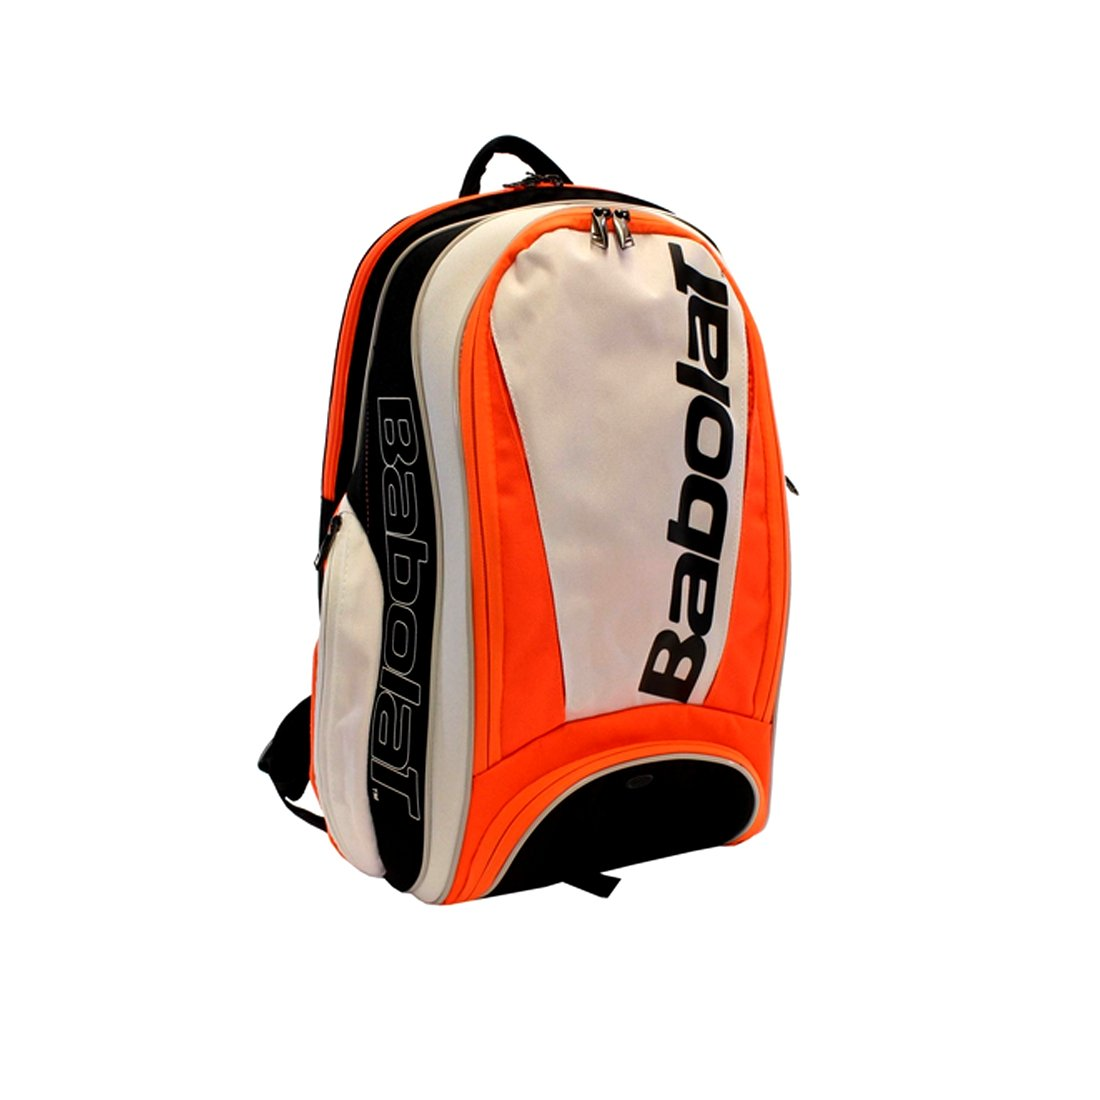 Babolat - Pure Tennis Backpack White and Red - (B753071-149) by Babolat (Image #1)